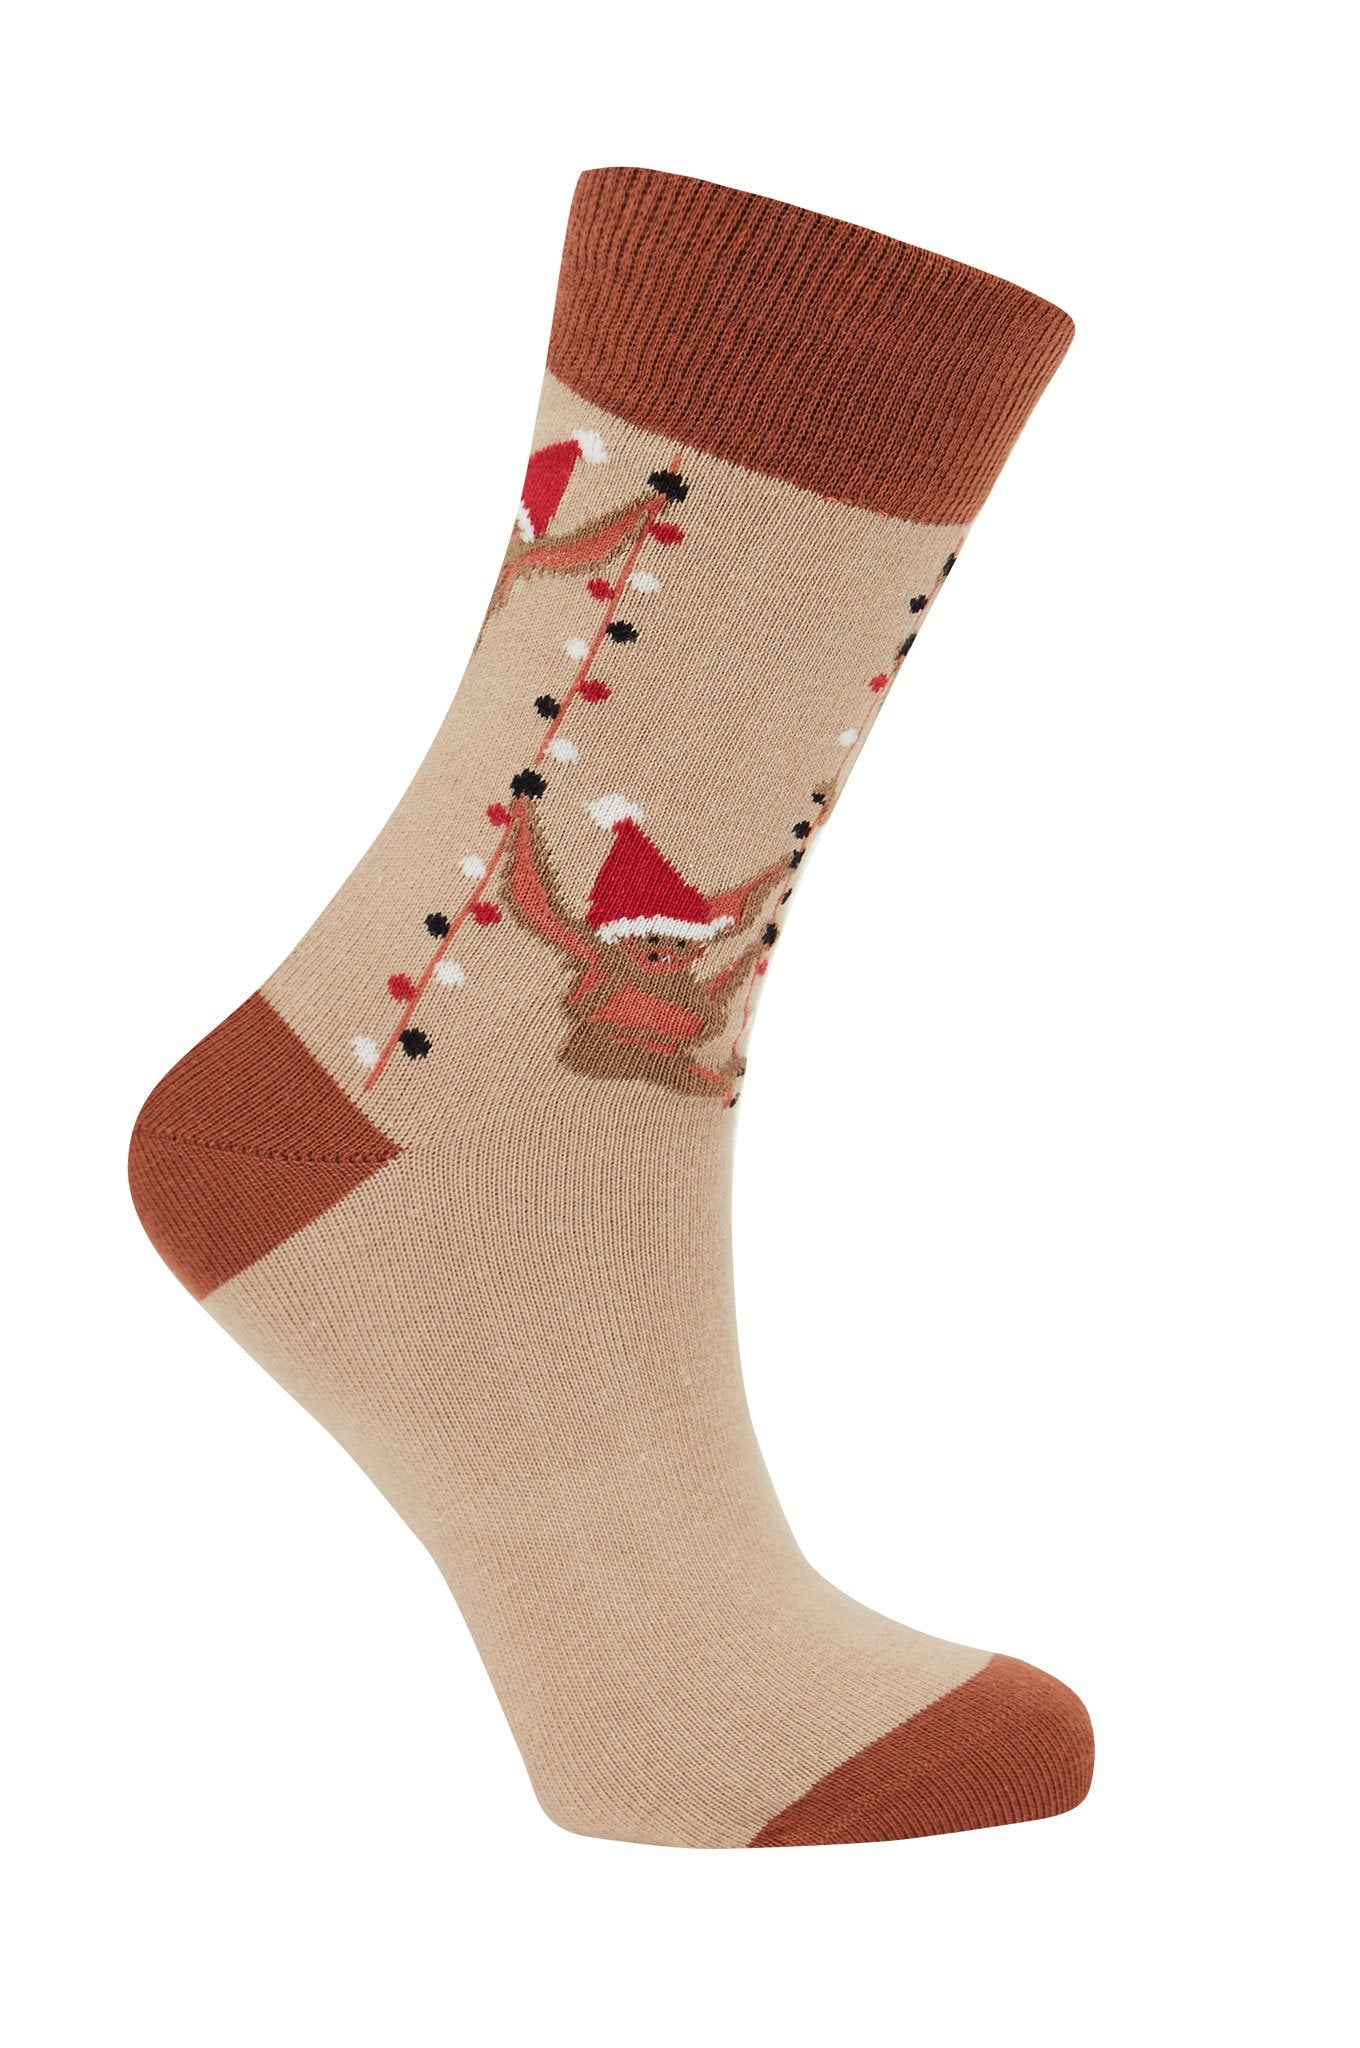 SOS Sand - GOTS Organic Cotton Socks